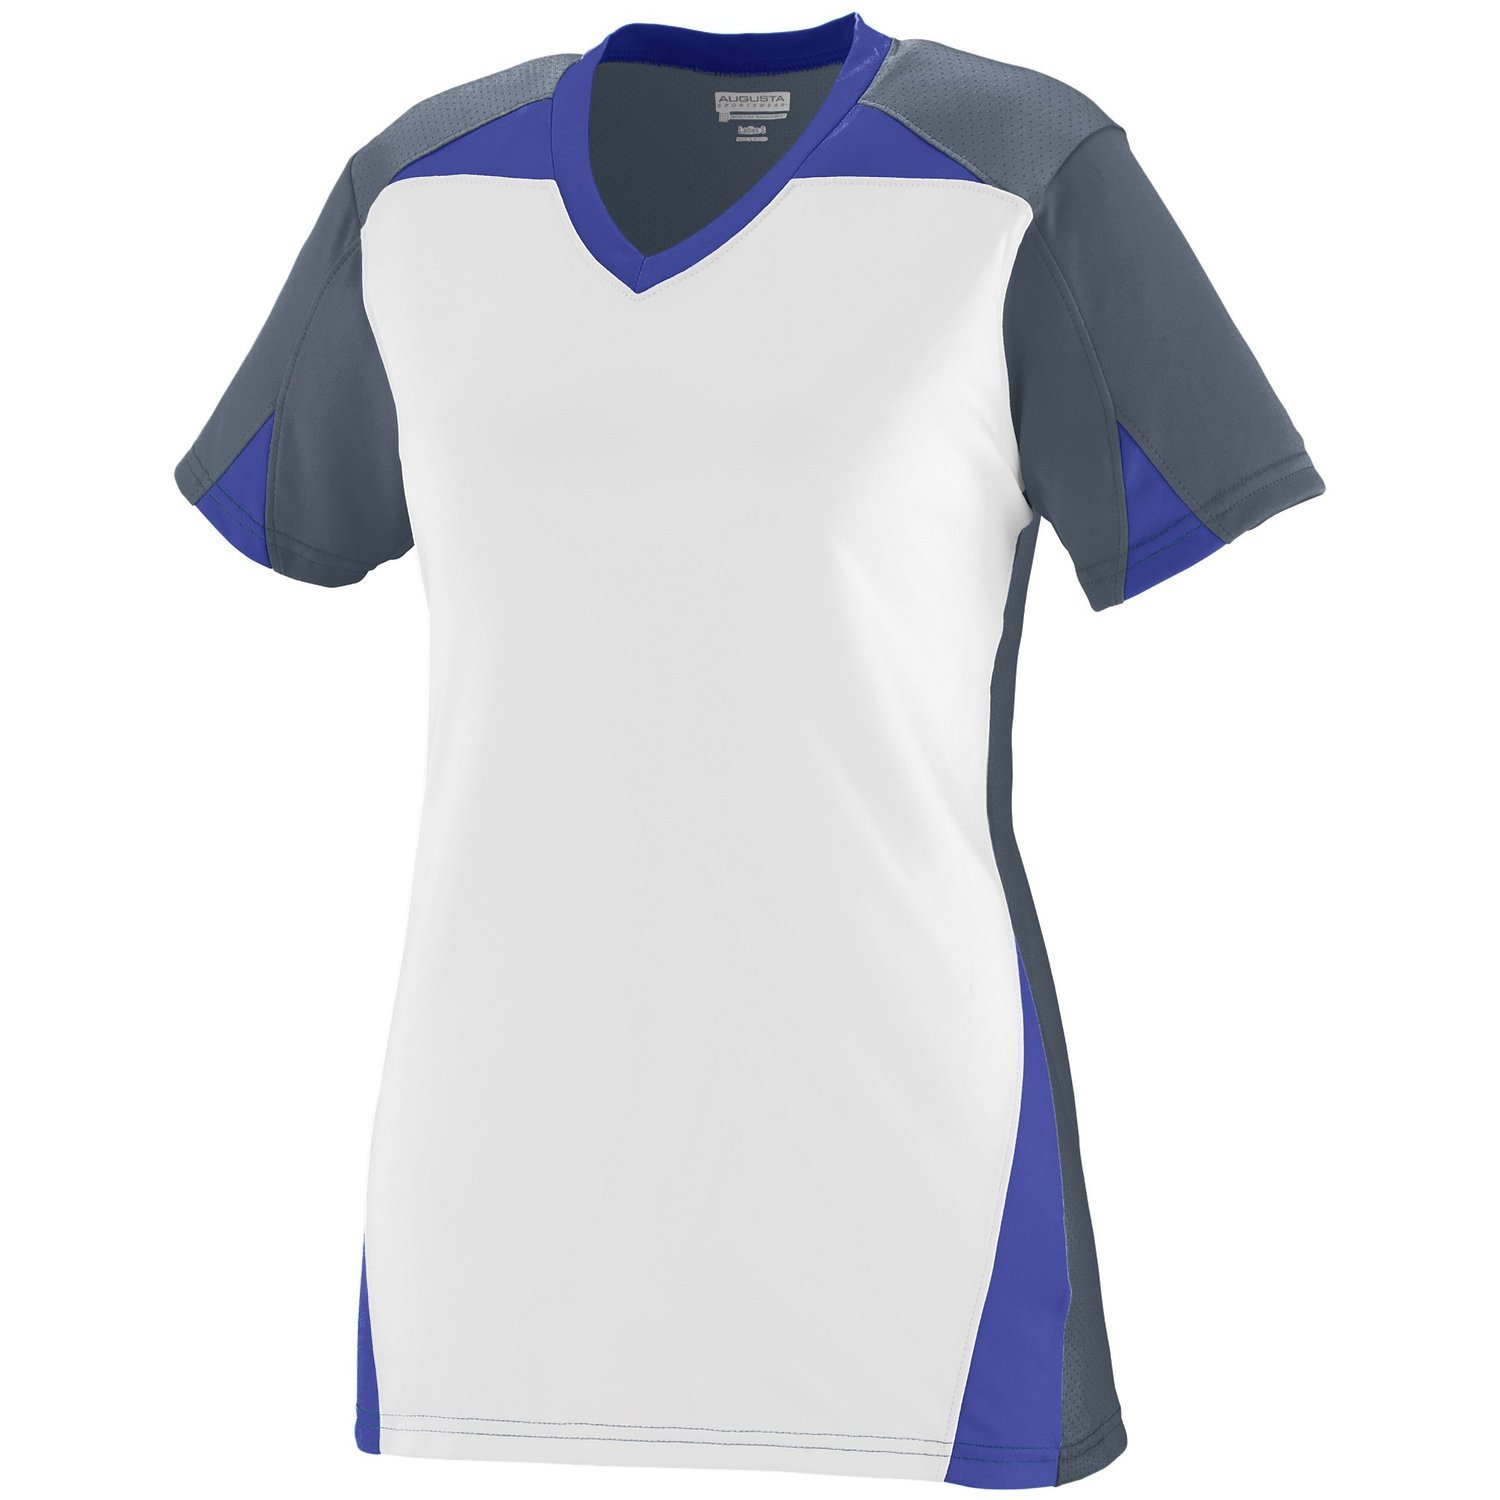 Augusta Sportswearレディースマトリックスジャージー B00P541Y0Q X-Large|Graphite/White/Purple Graphite/White/Purple X-Large